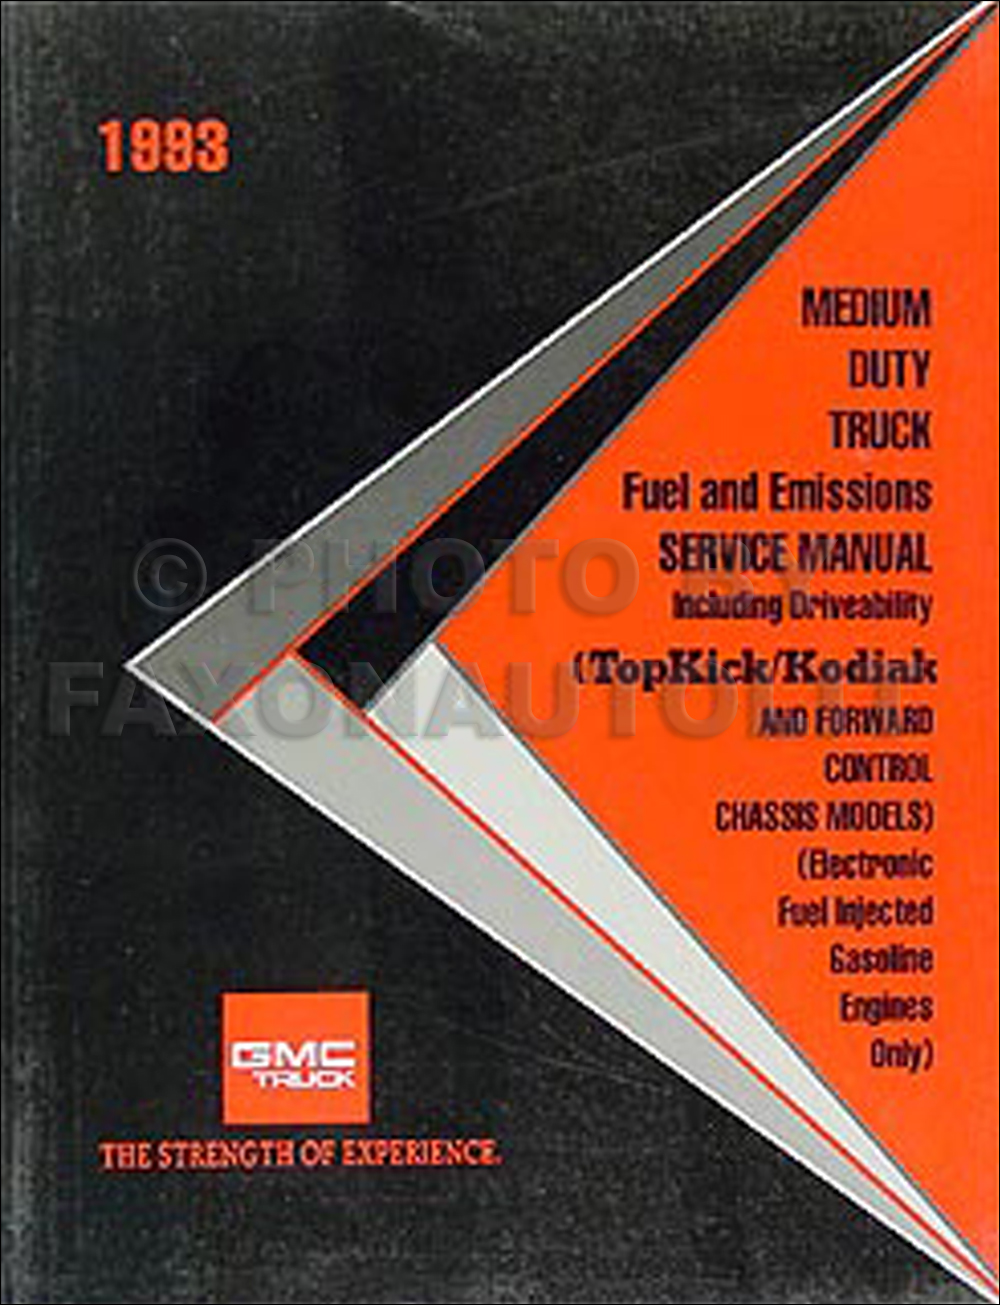 1993 GMC Topkick Chevy Kodiak B7 P6 Fuel and Emissions Service Manual